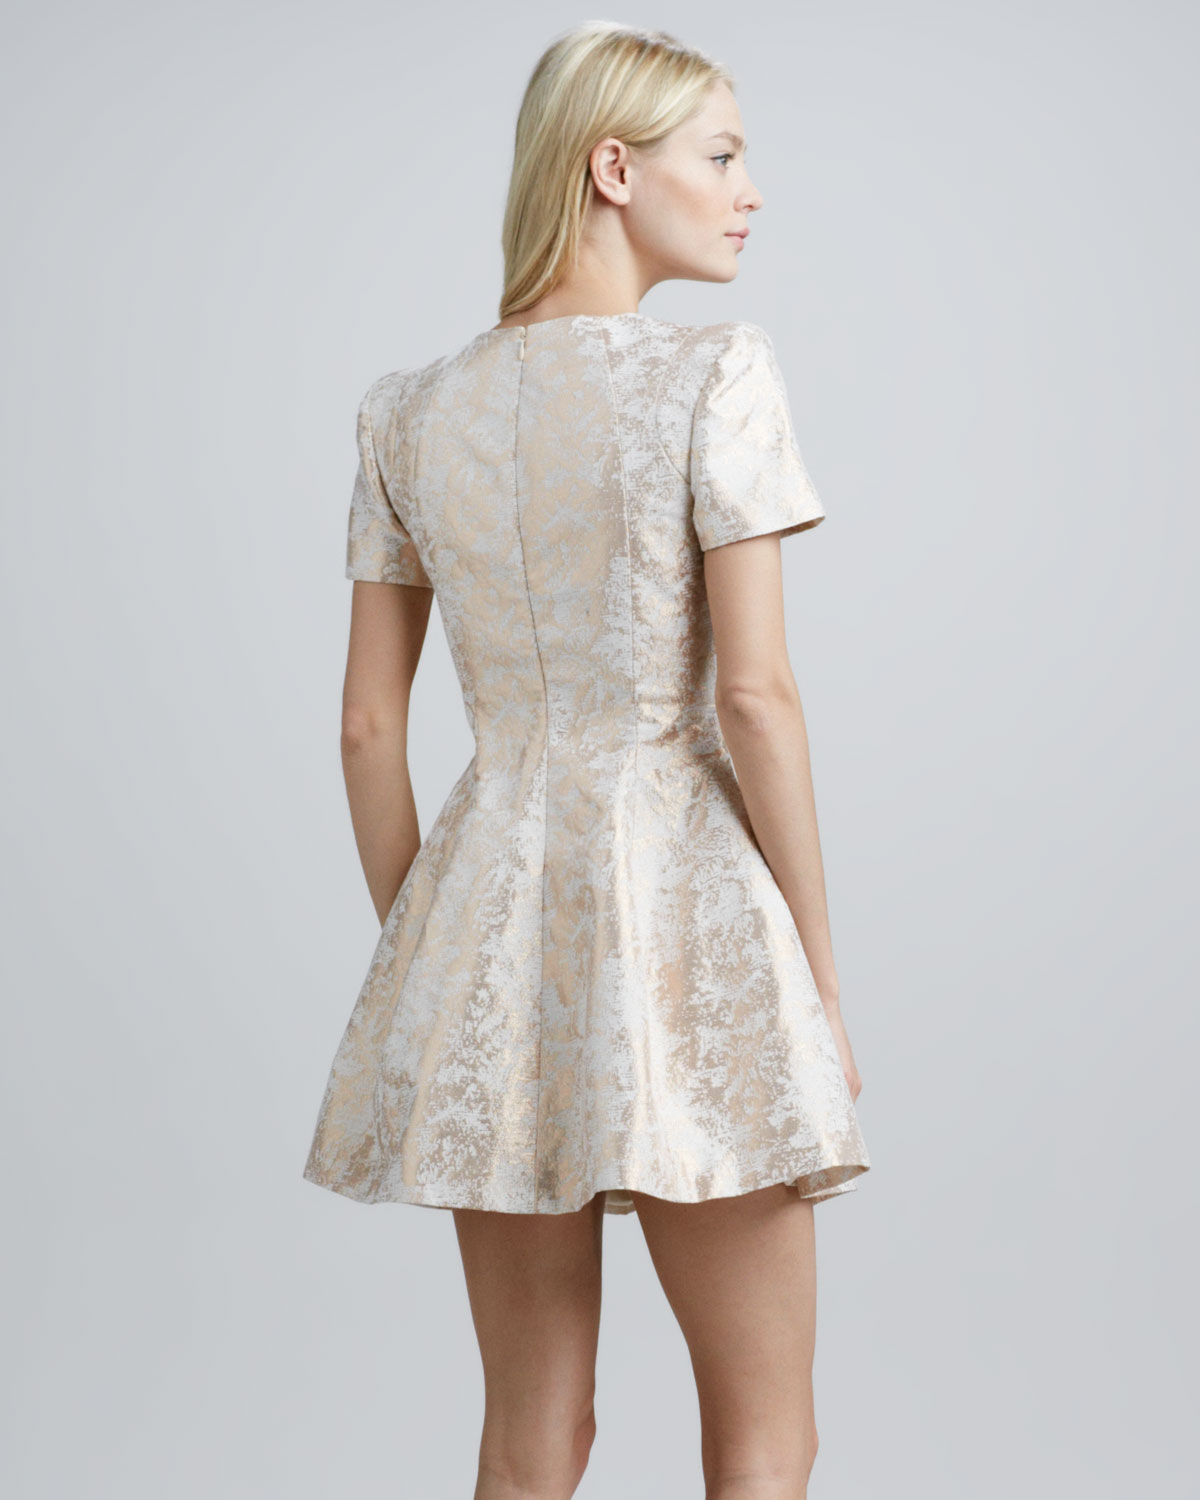 Cameo dress color white and gold